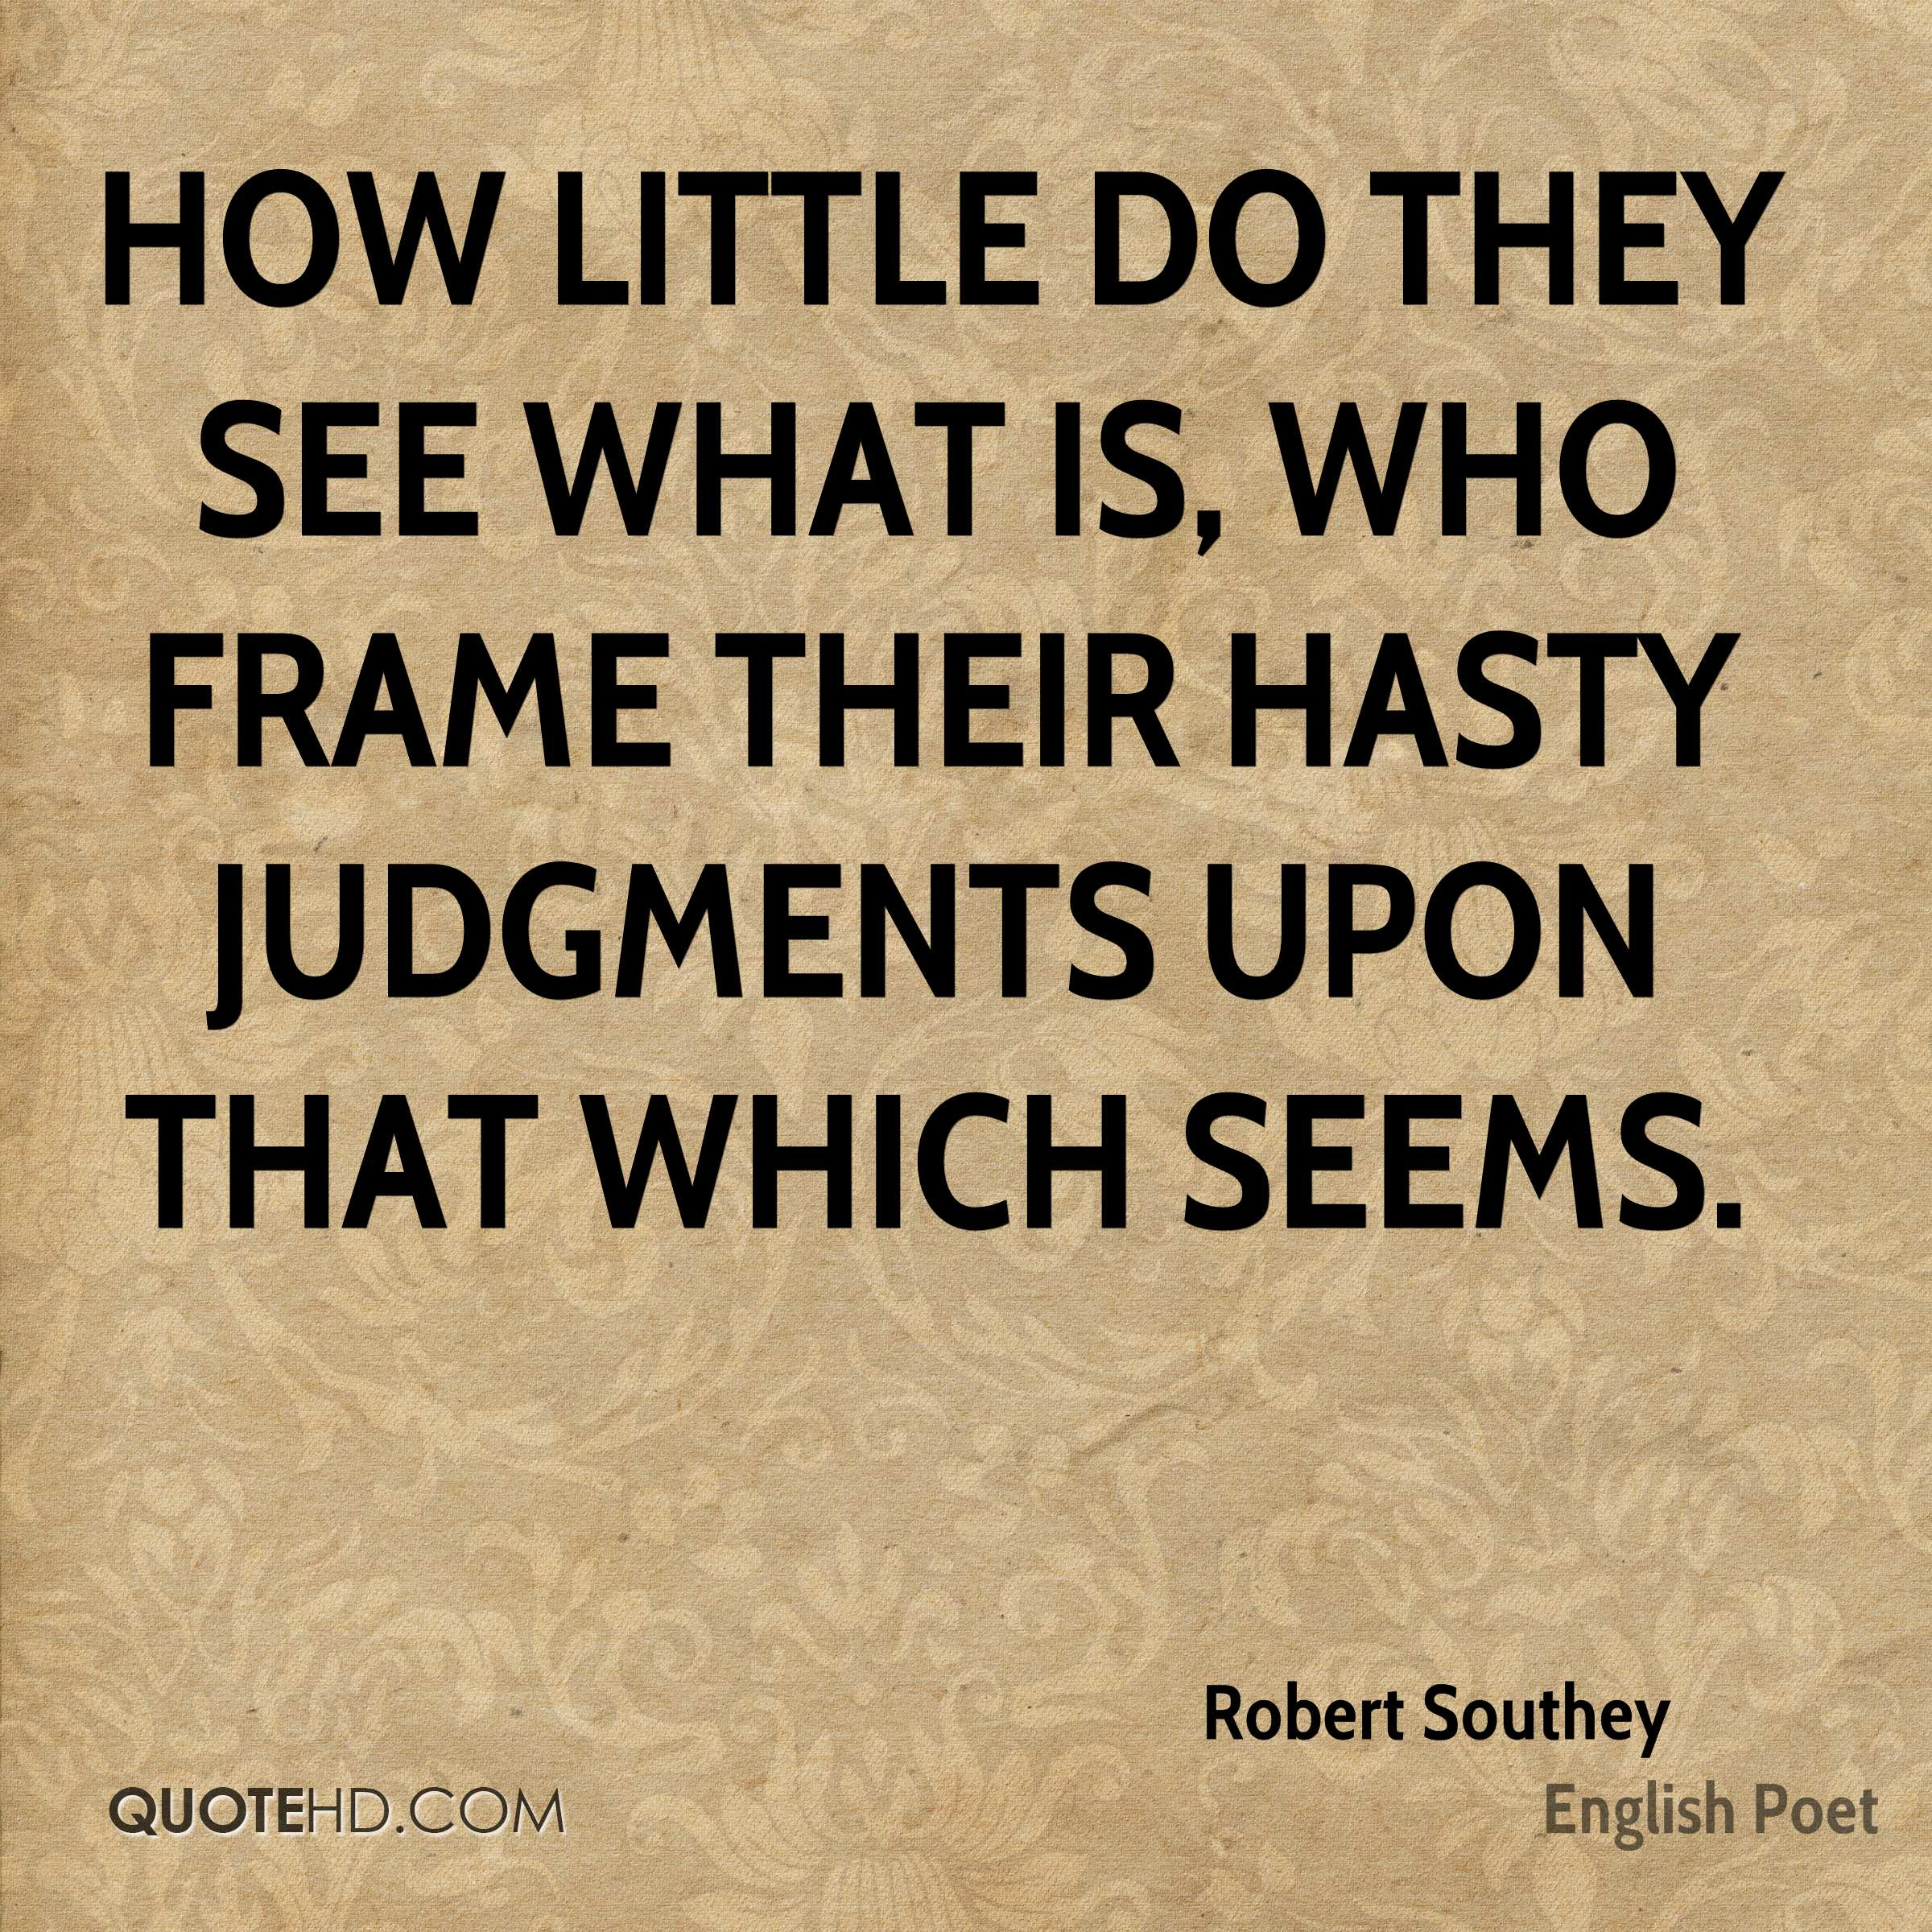 How little do they see what is, who frame their hasty judgments upon that which seems.